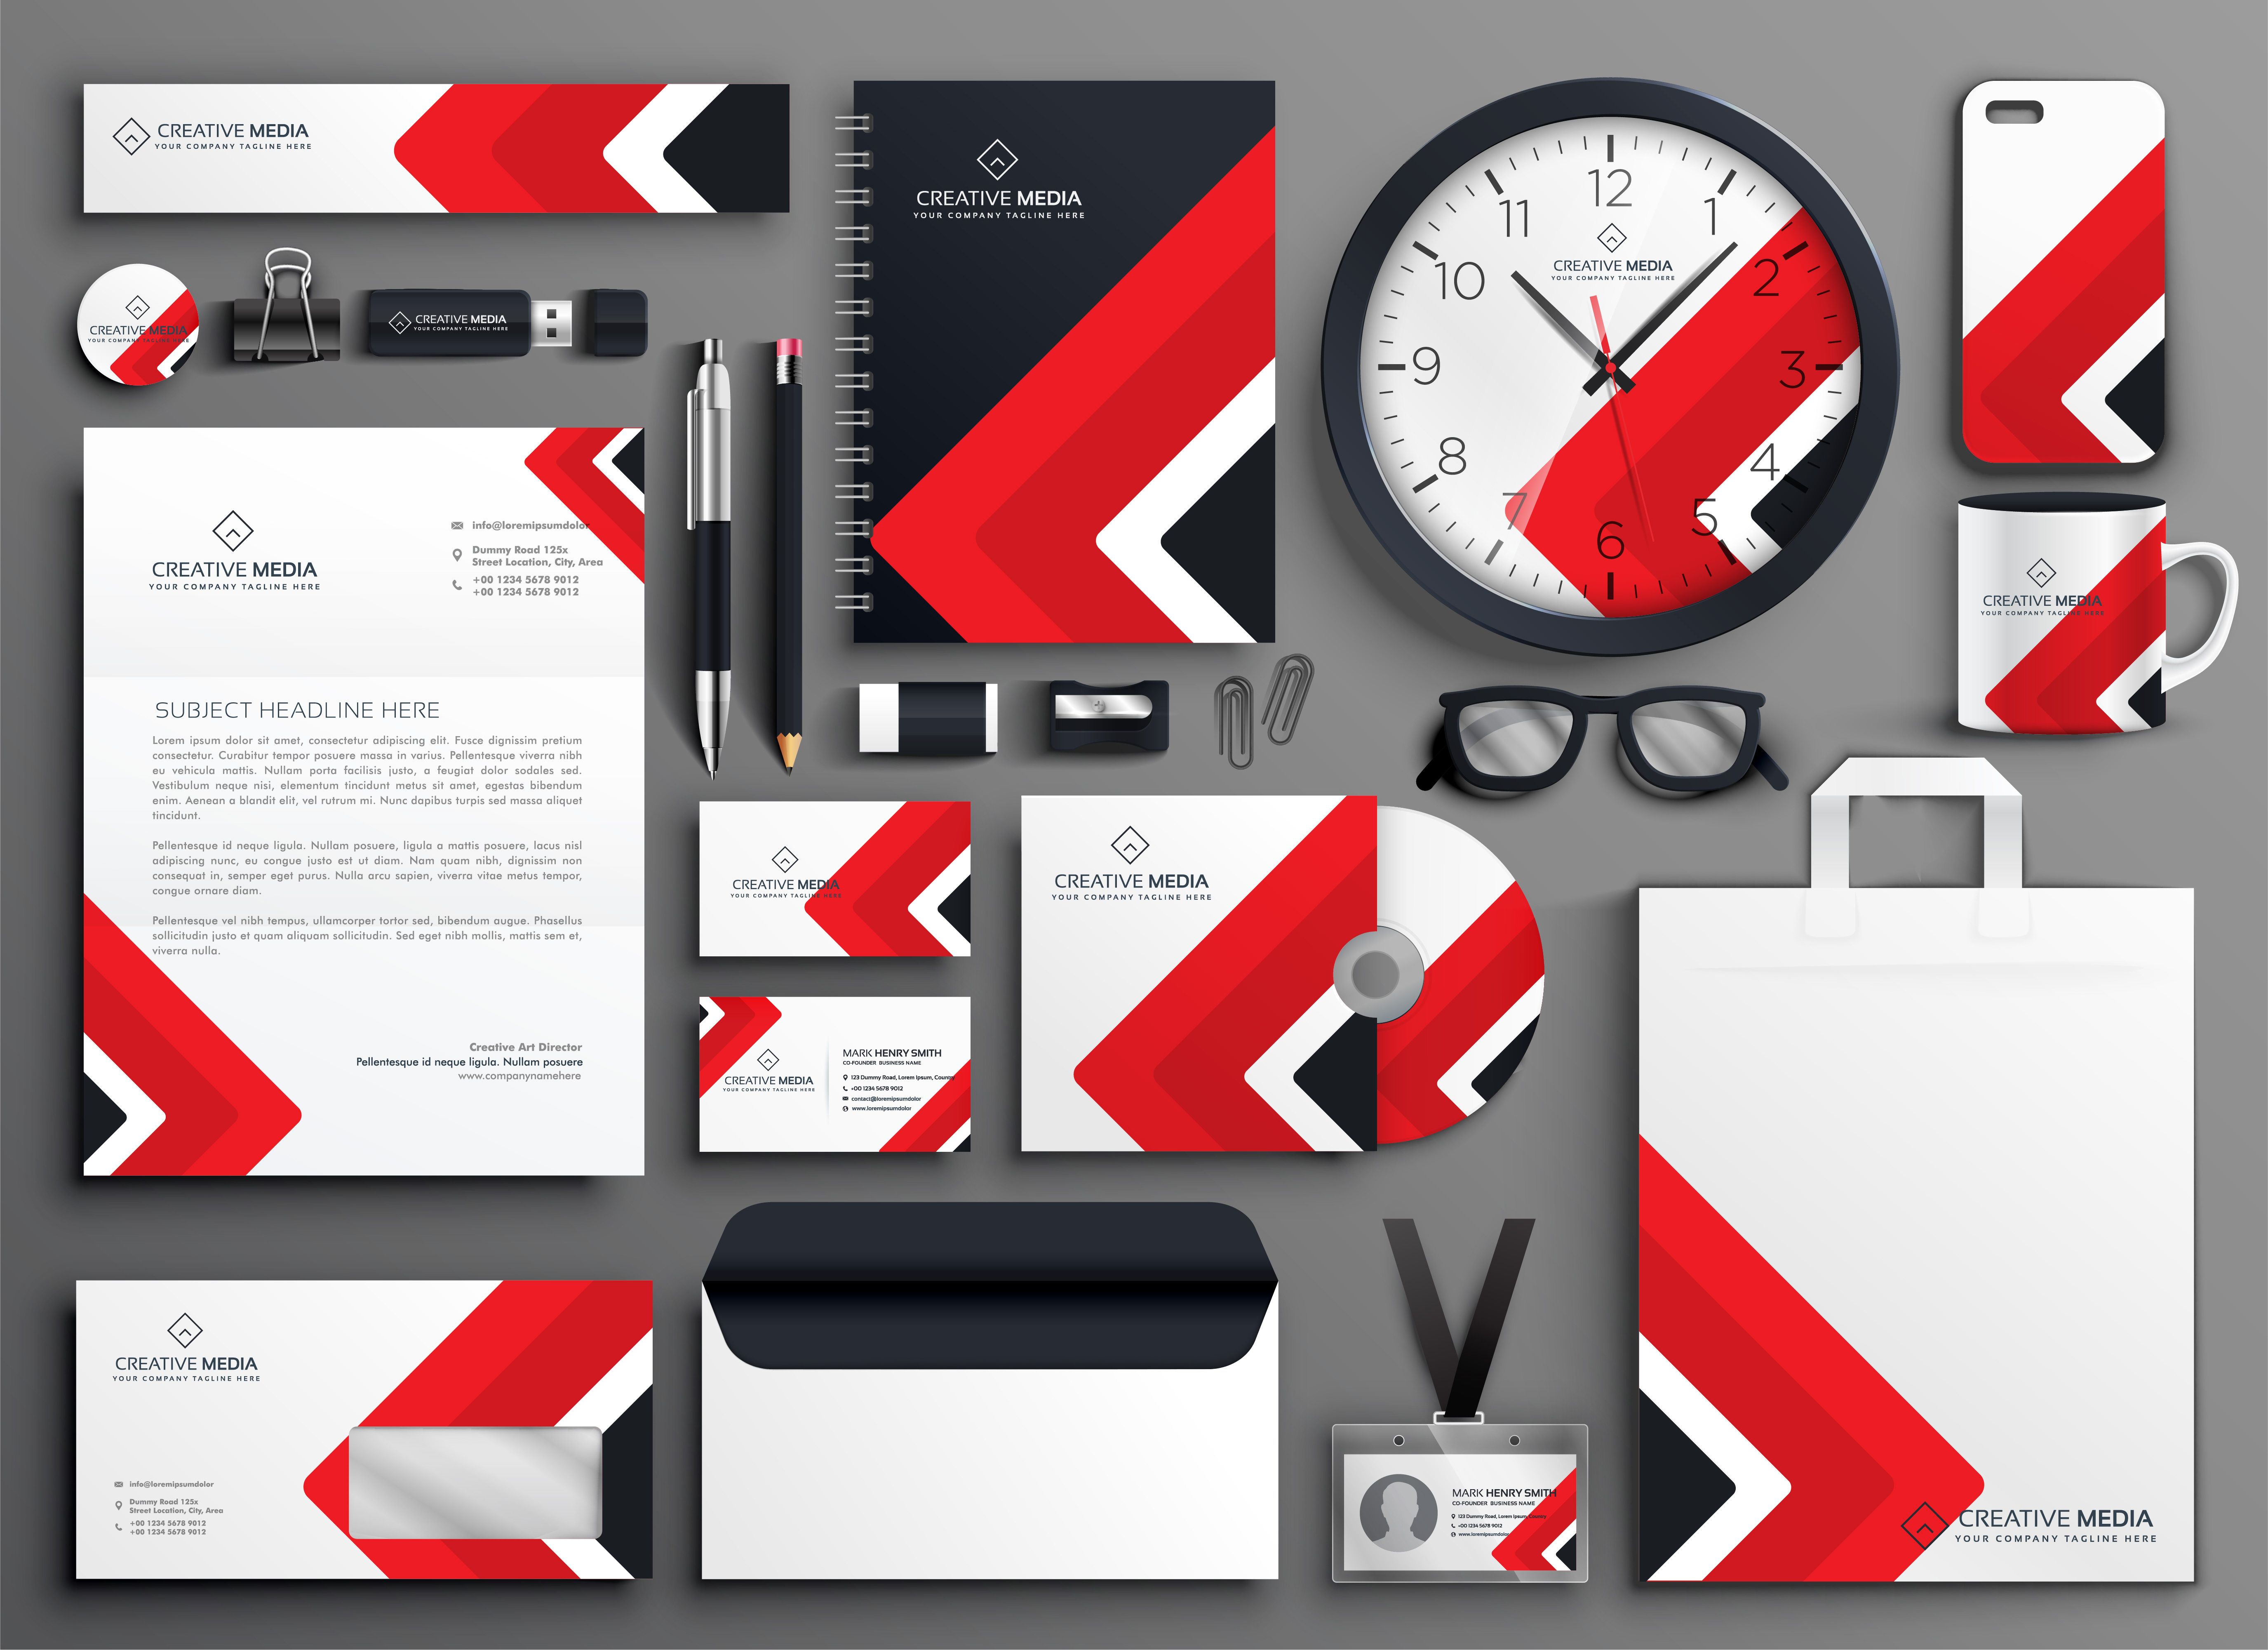 I will design business card letterhead and branding stationery items